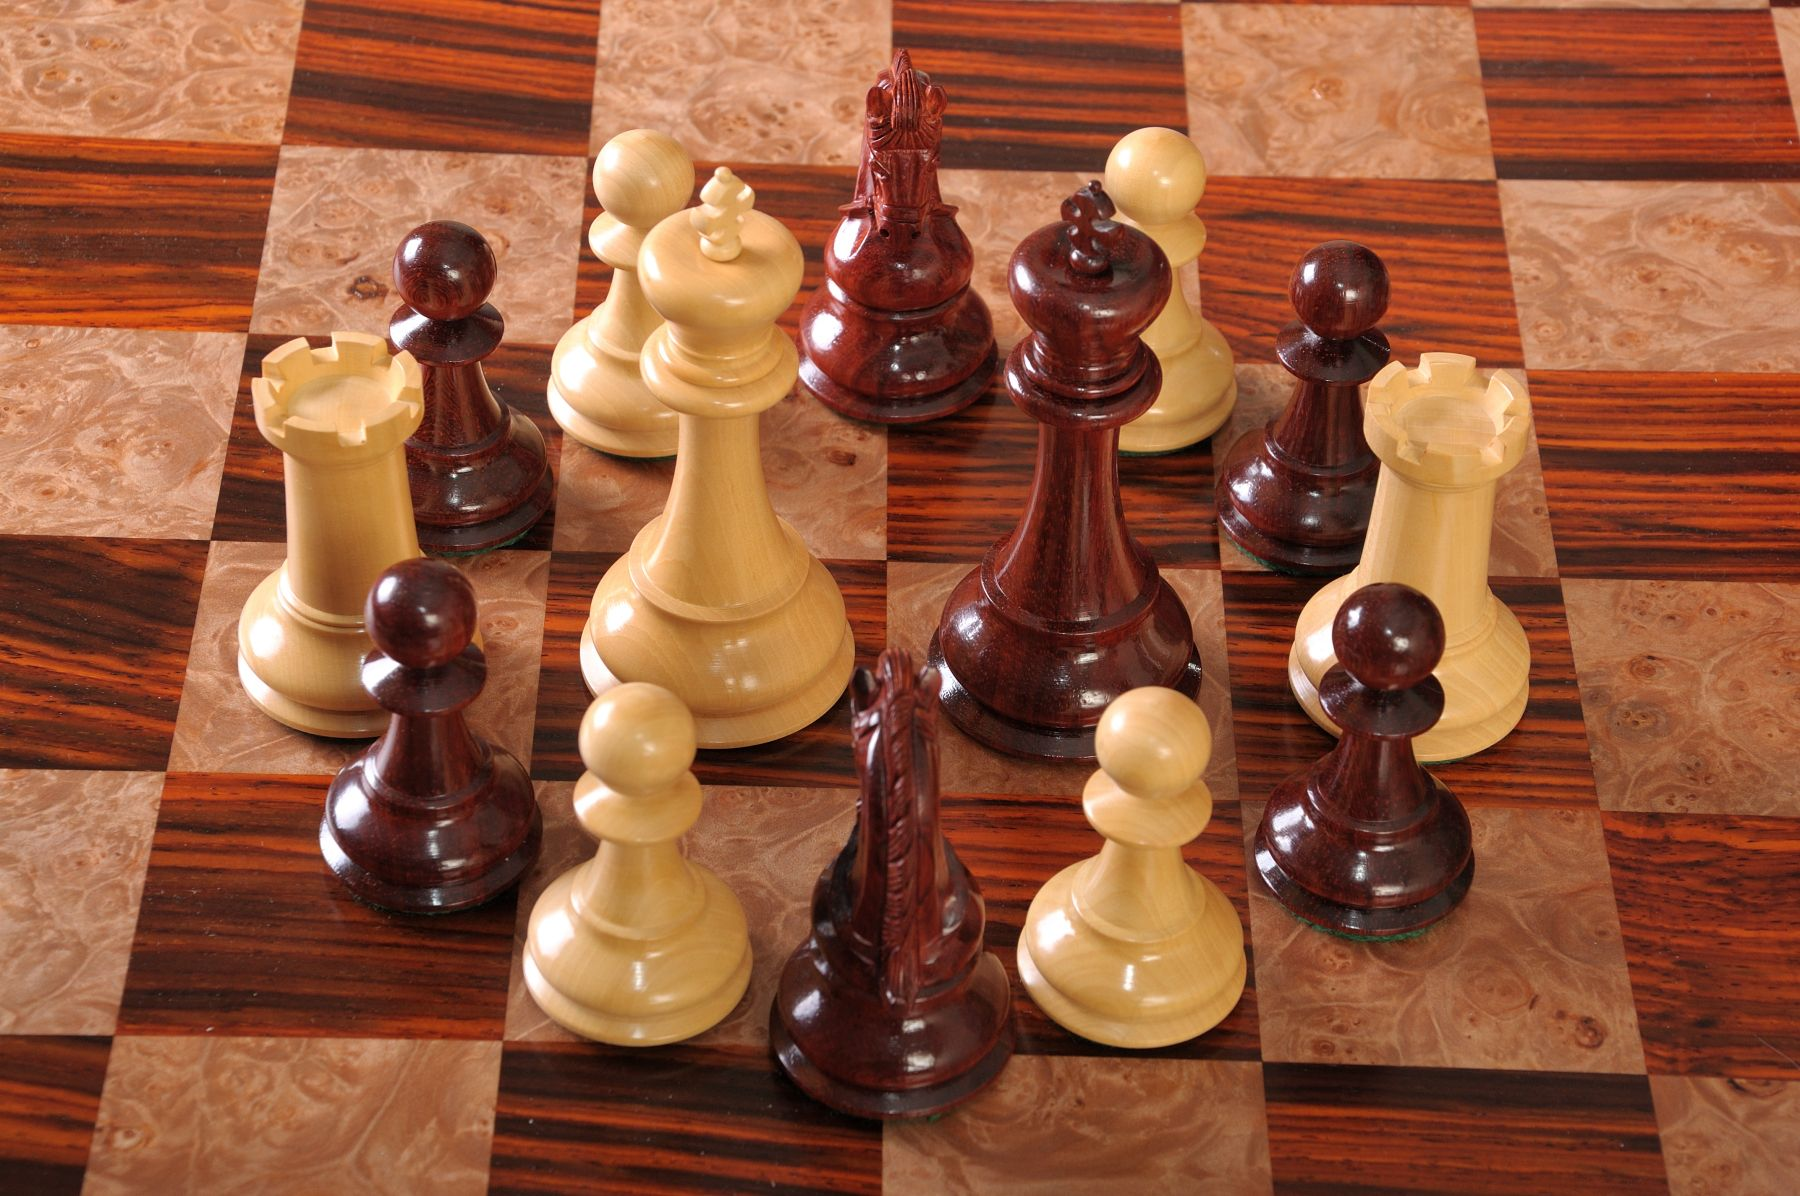 The Sultan Series Chess Pieces Wood Chess Board Wood Chess